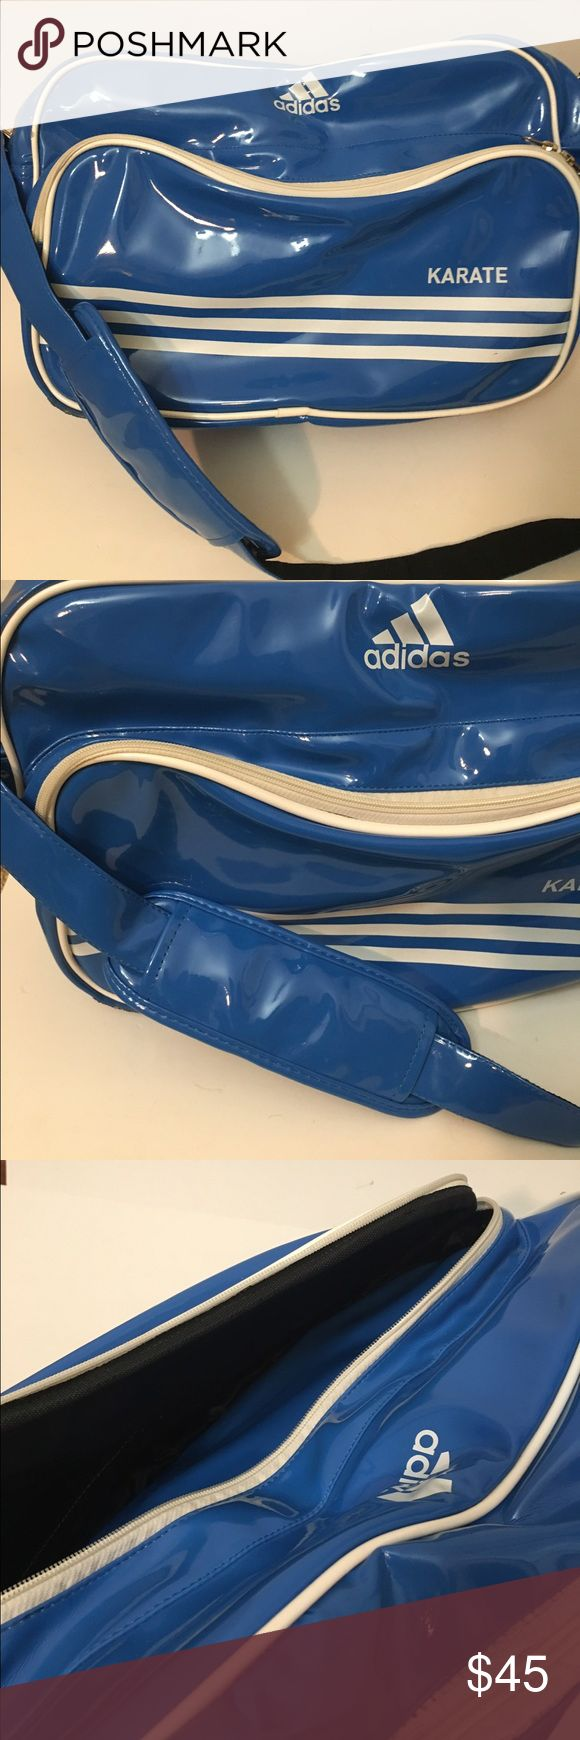 ADIDAS Sports Karate Equipment Blue Bag Tote This is in excellent condition. Awesome blue shiny finish. Great for hauling your gear around. This scones from a smoke free home. I would be happy to answer any questions. Adidas Bags